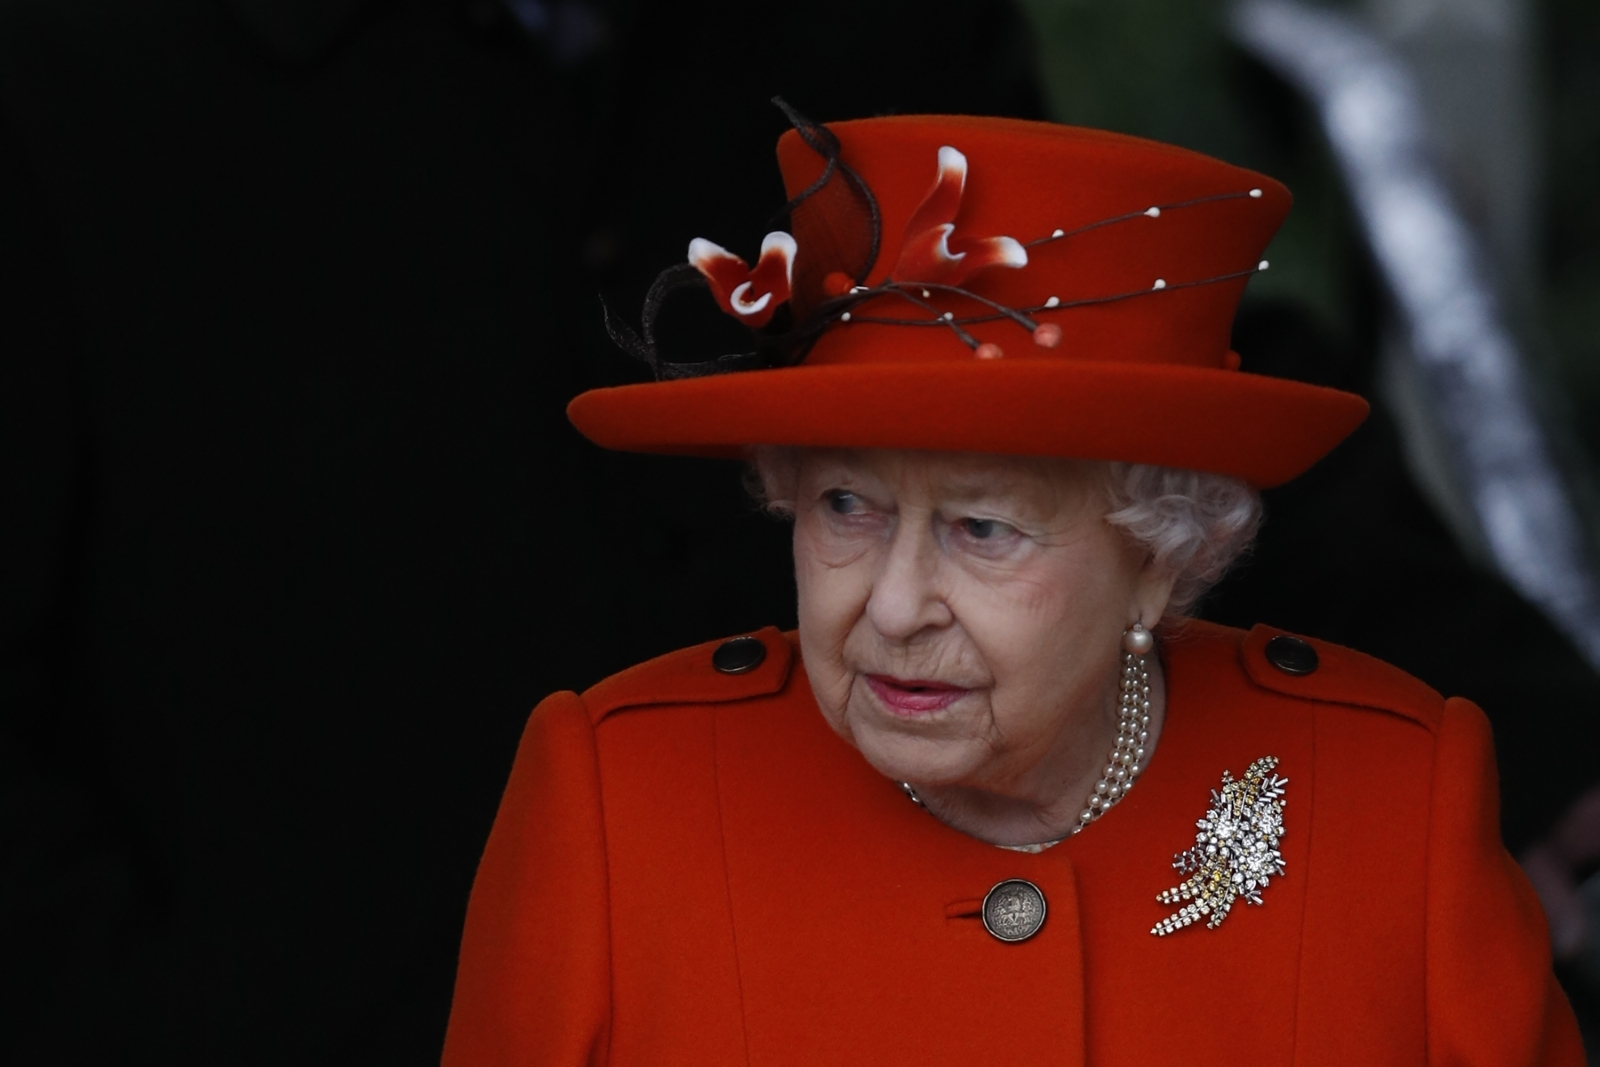 Security Threat To The Queen Concerns Raised As Royal